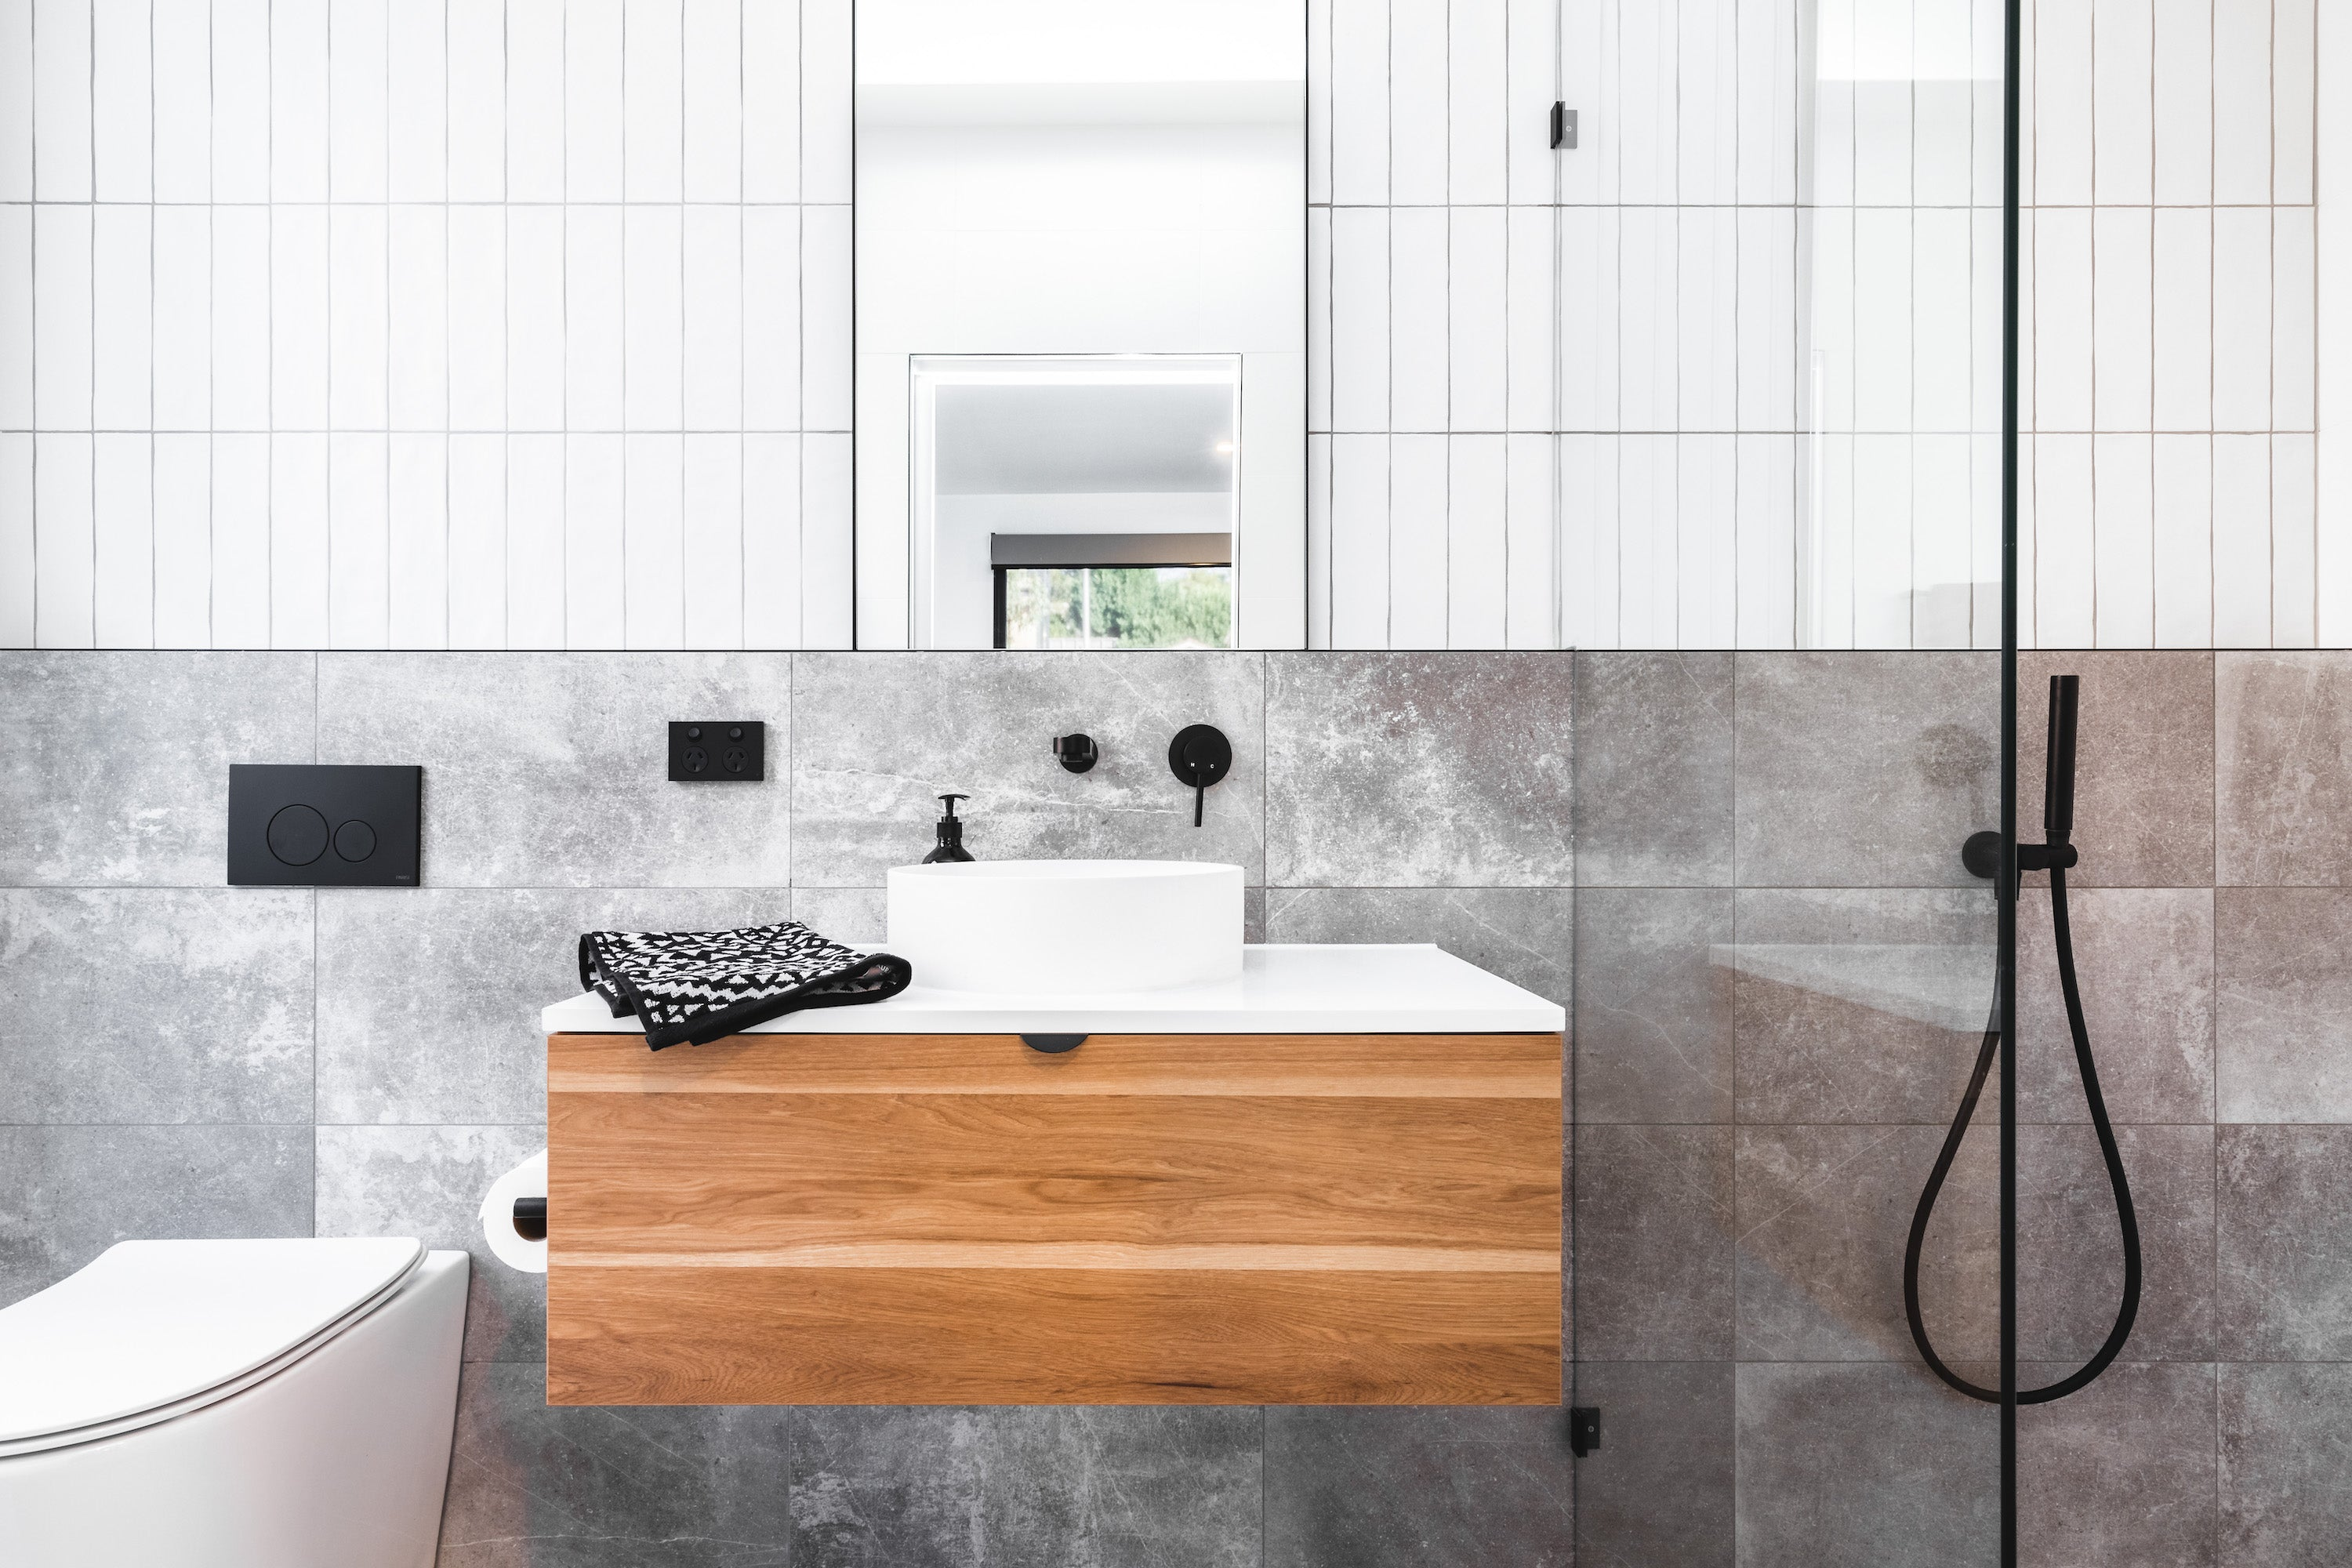 Full Bathroom with Meir black tapware and pop-up wastes